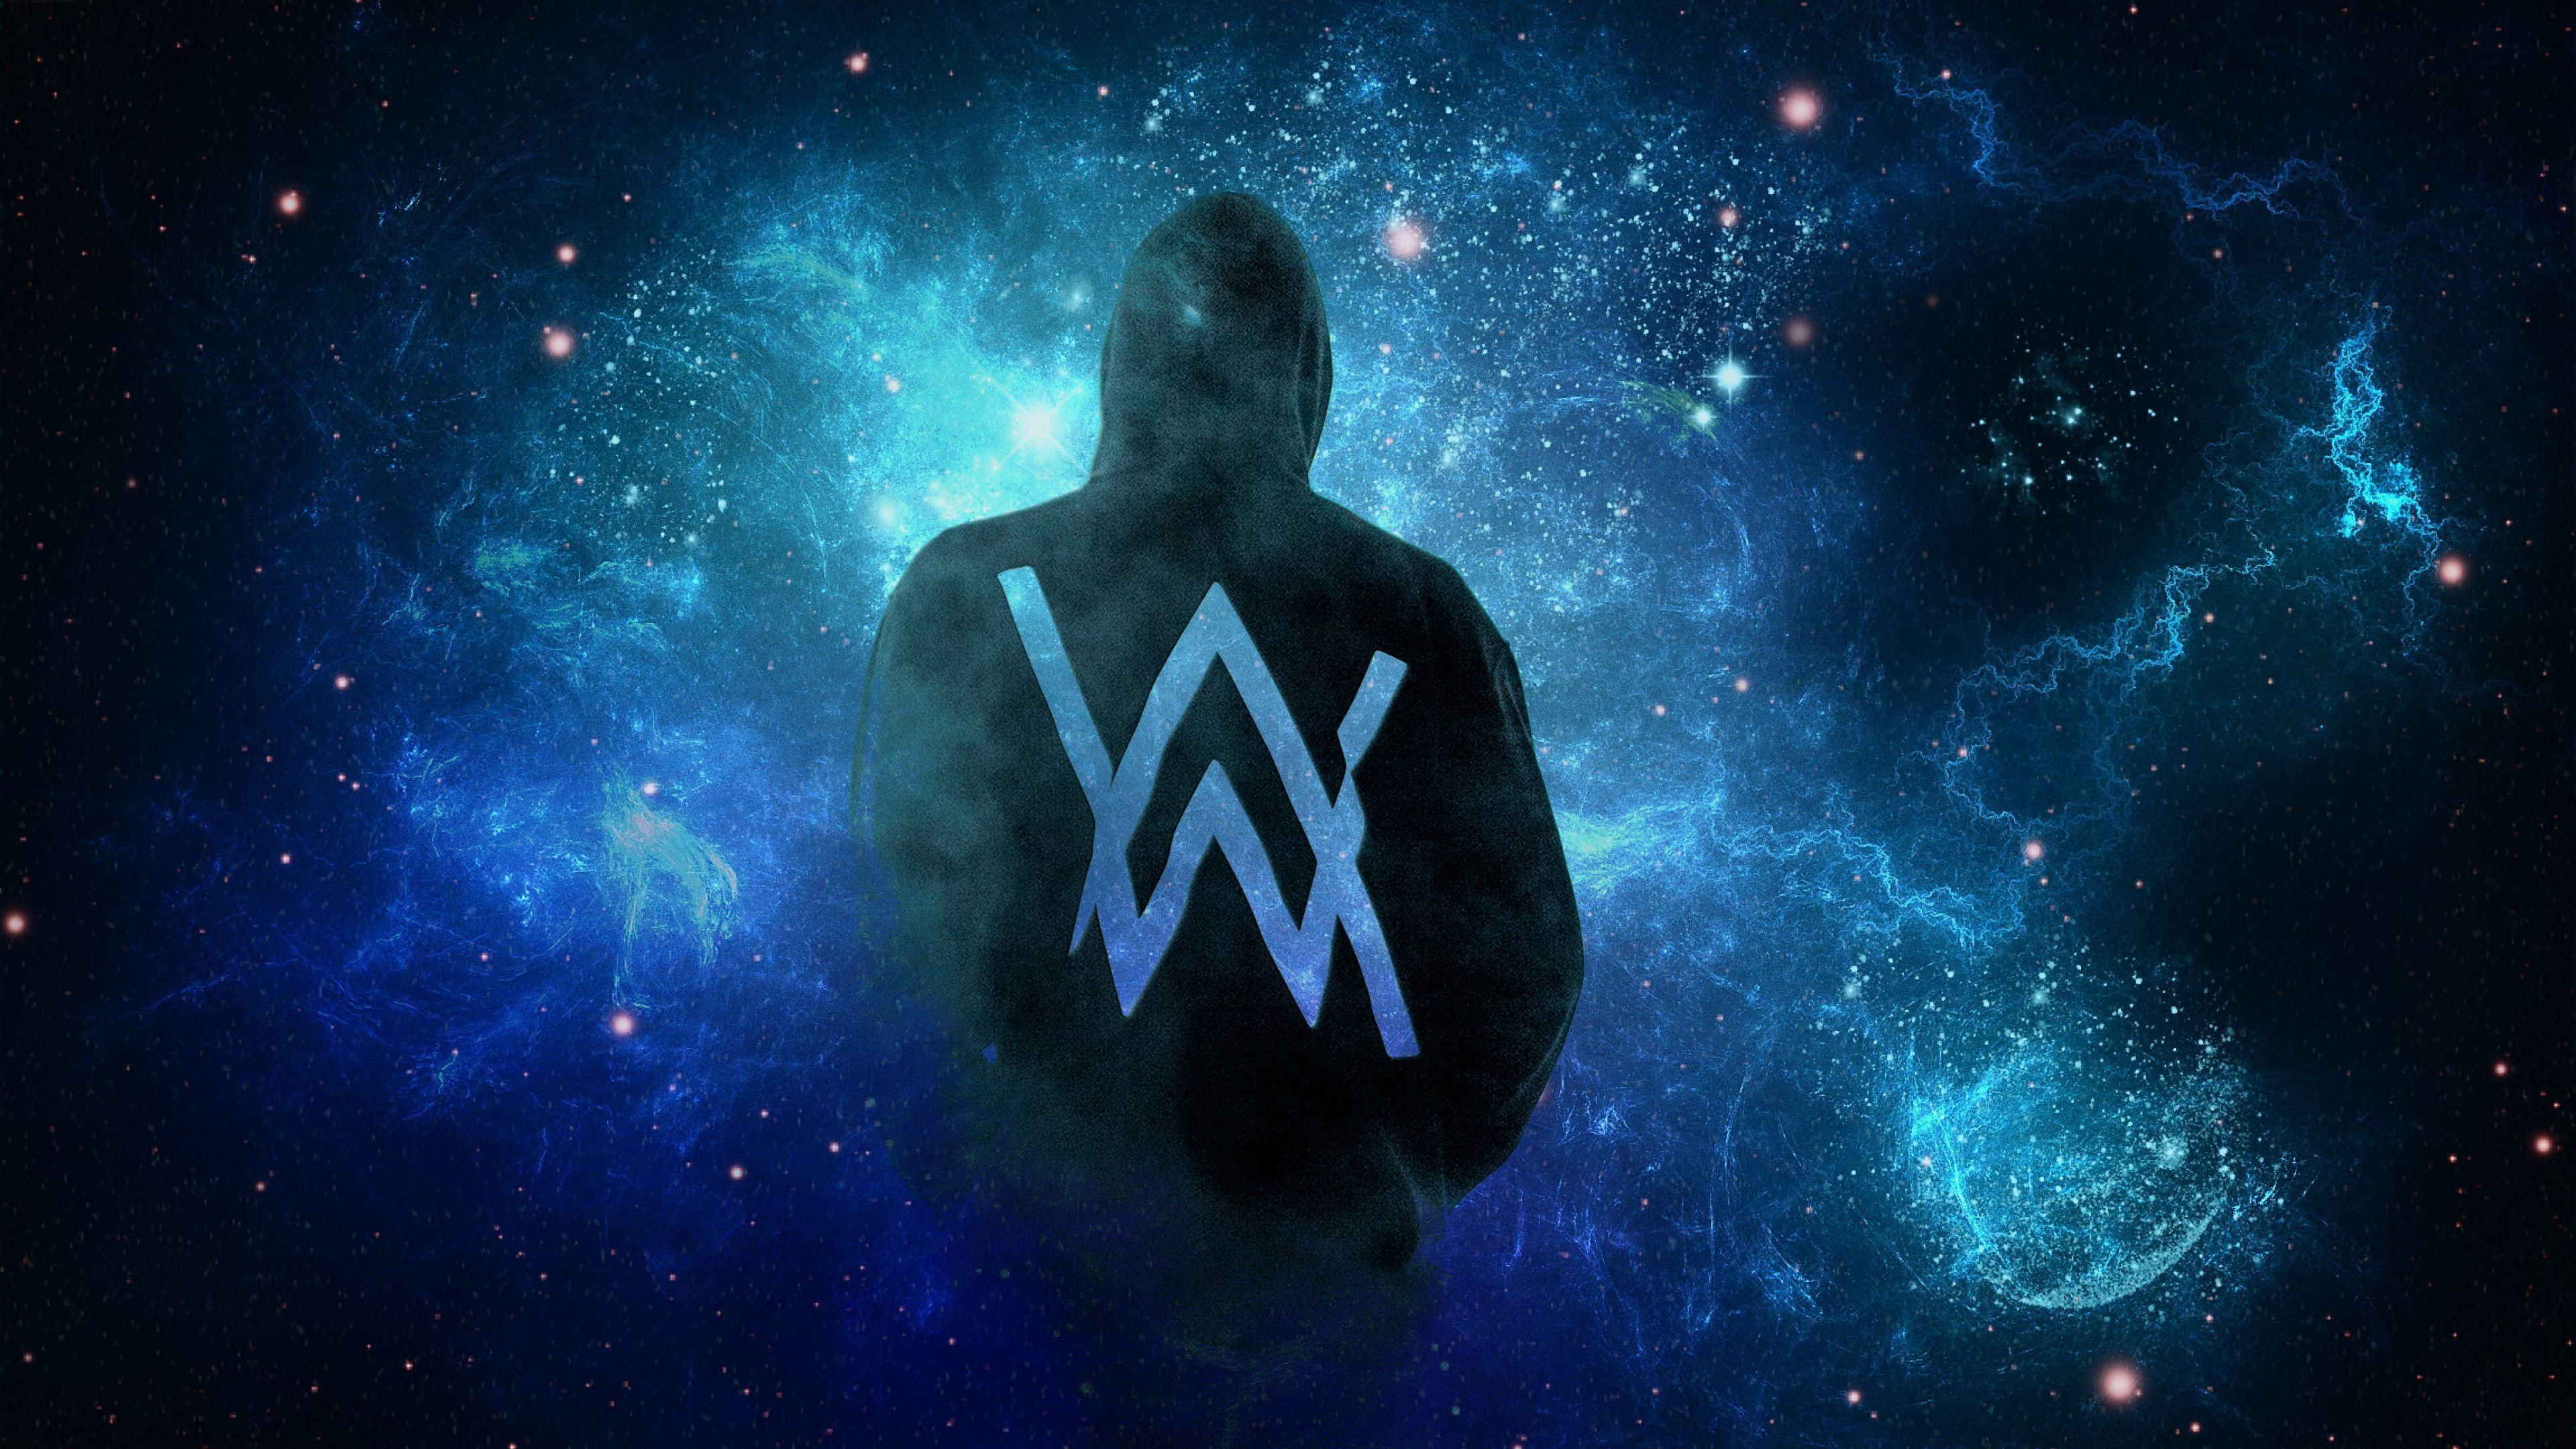 Alan Walker Wallpapers Top Free Alan Walker Backgrounds